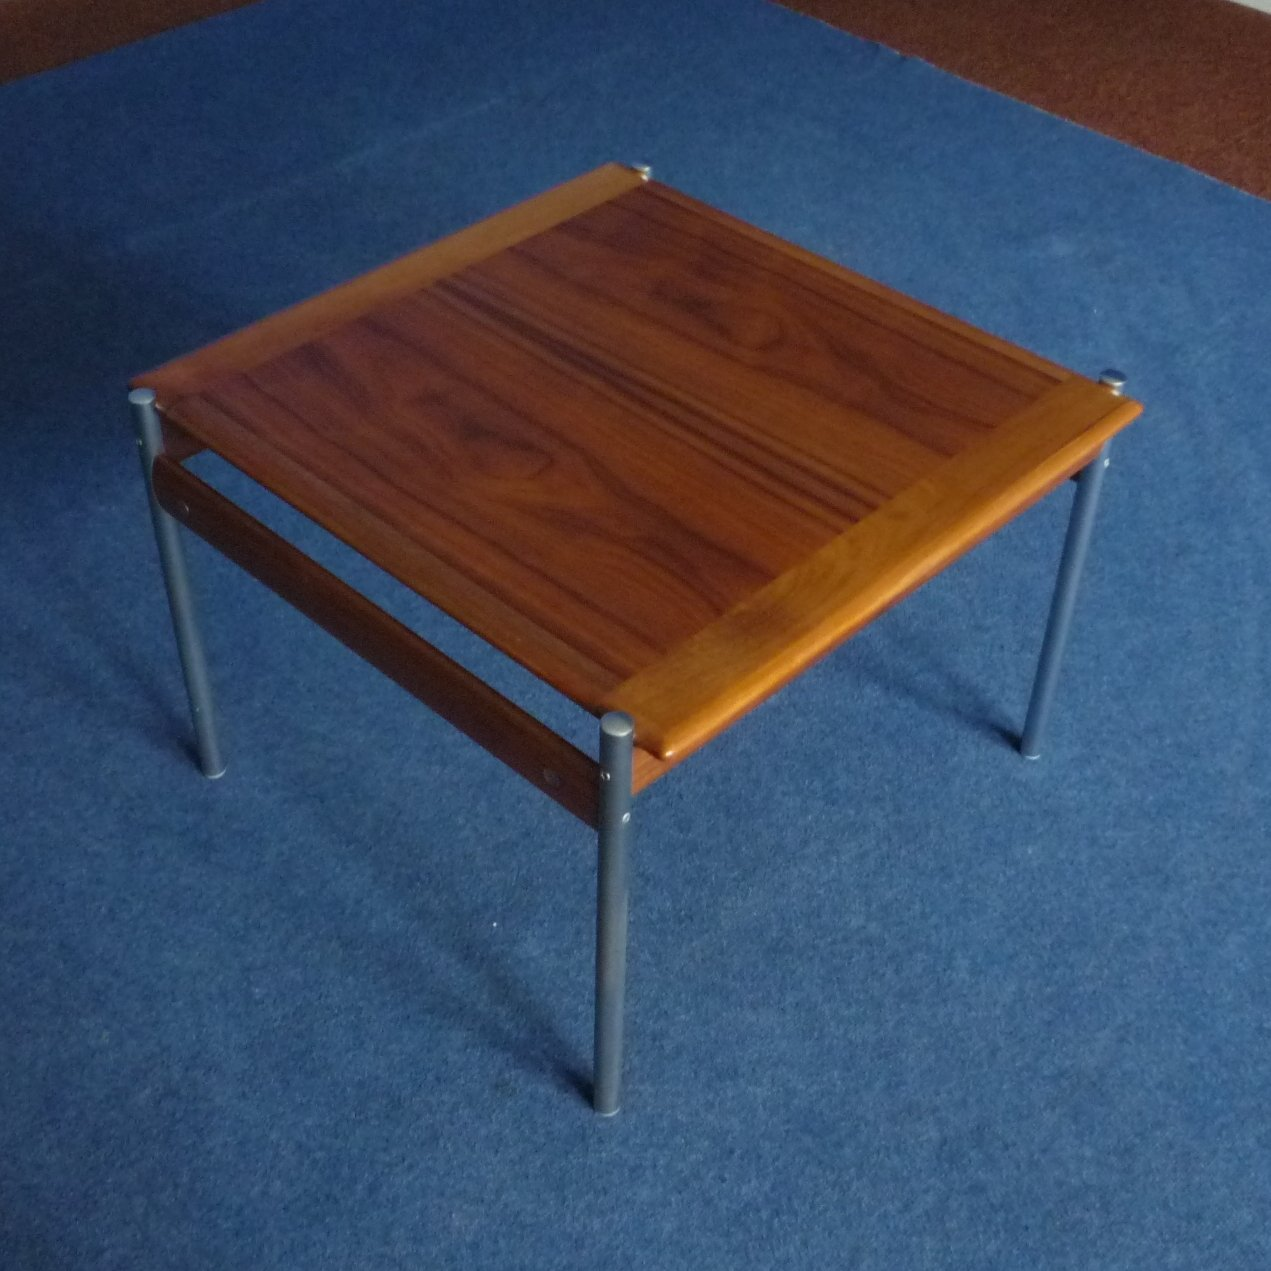 Massive Coffee Table By Sven Ivar Dysthe For Dokka Møbler Norway 1960s